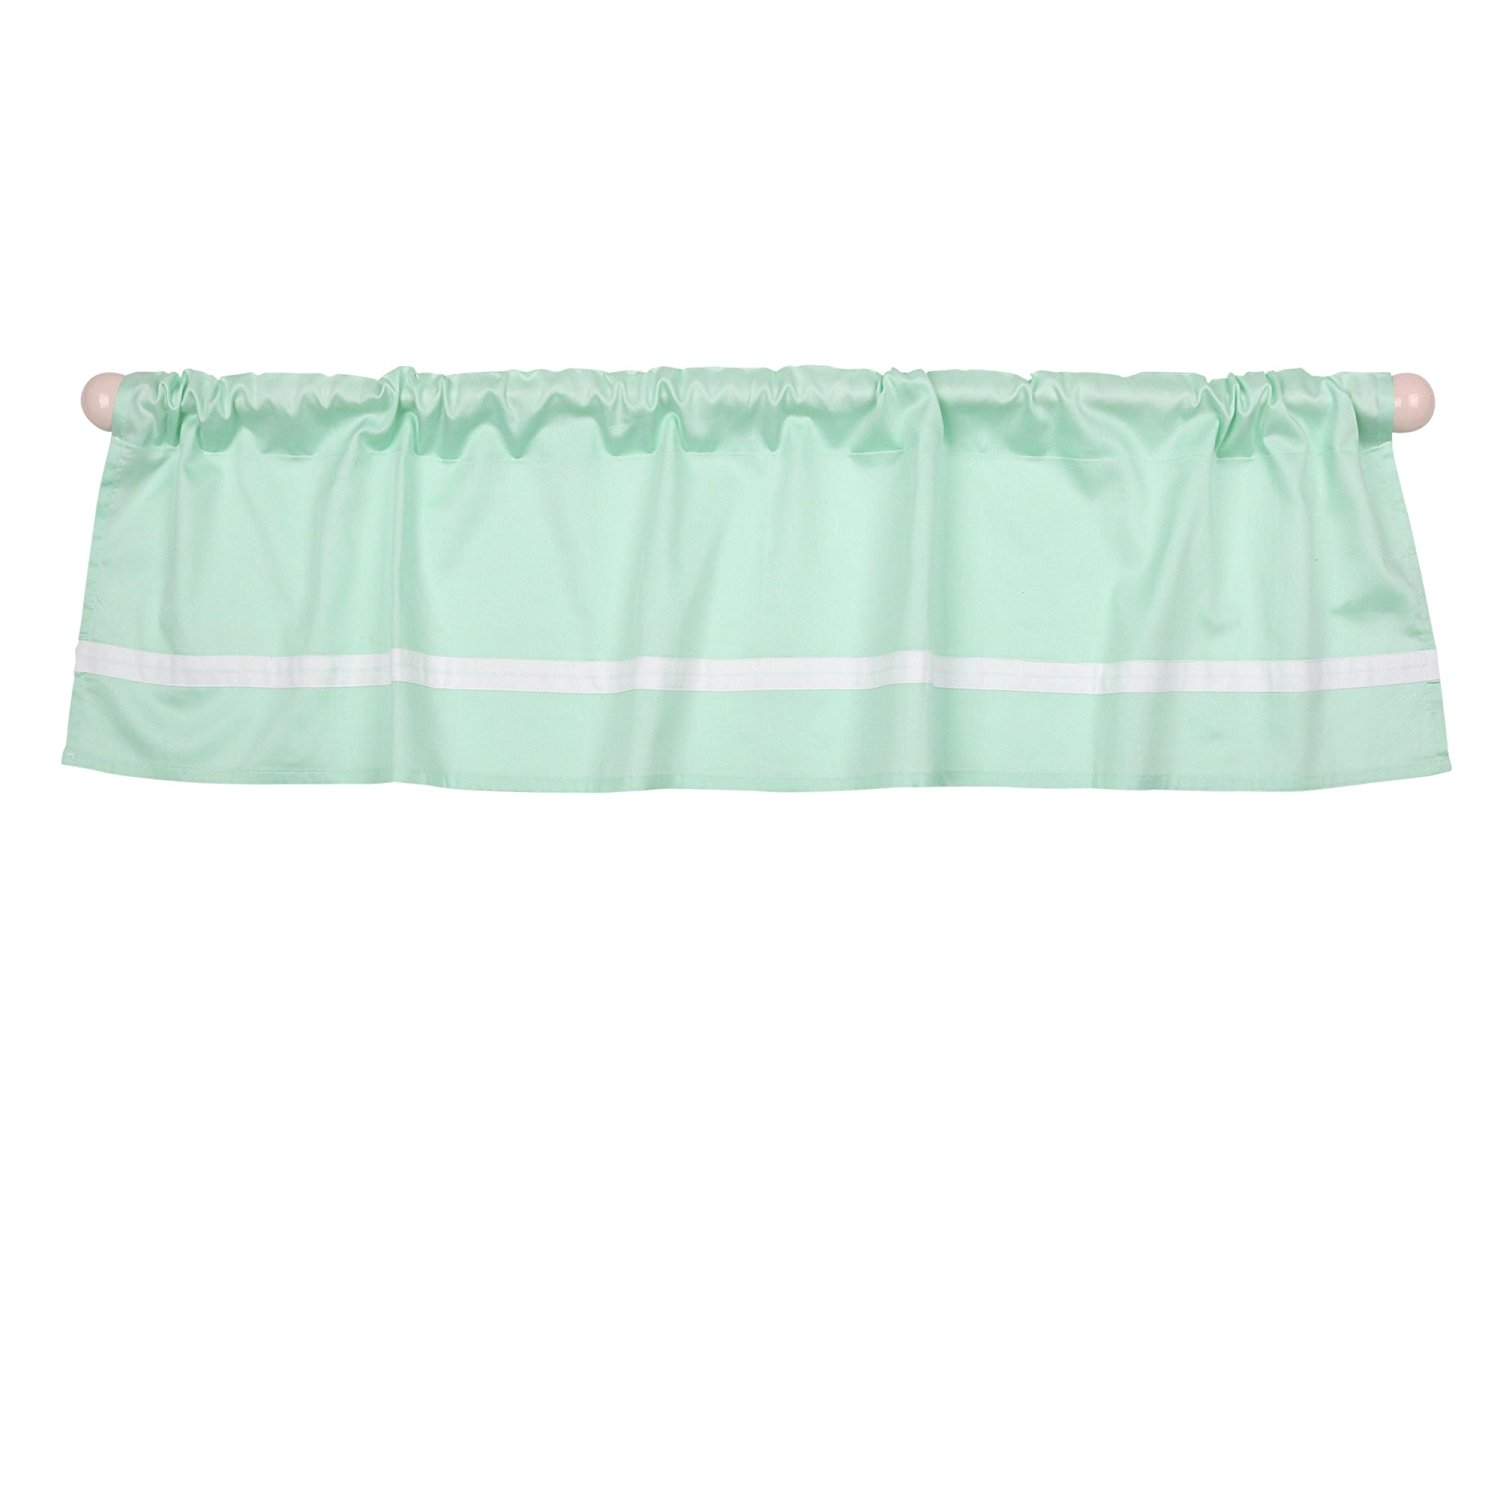 Mint Green Tailored Window Valance by The Peanut Shell 100% Cotton Sateen by Quality Brand